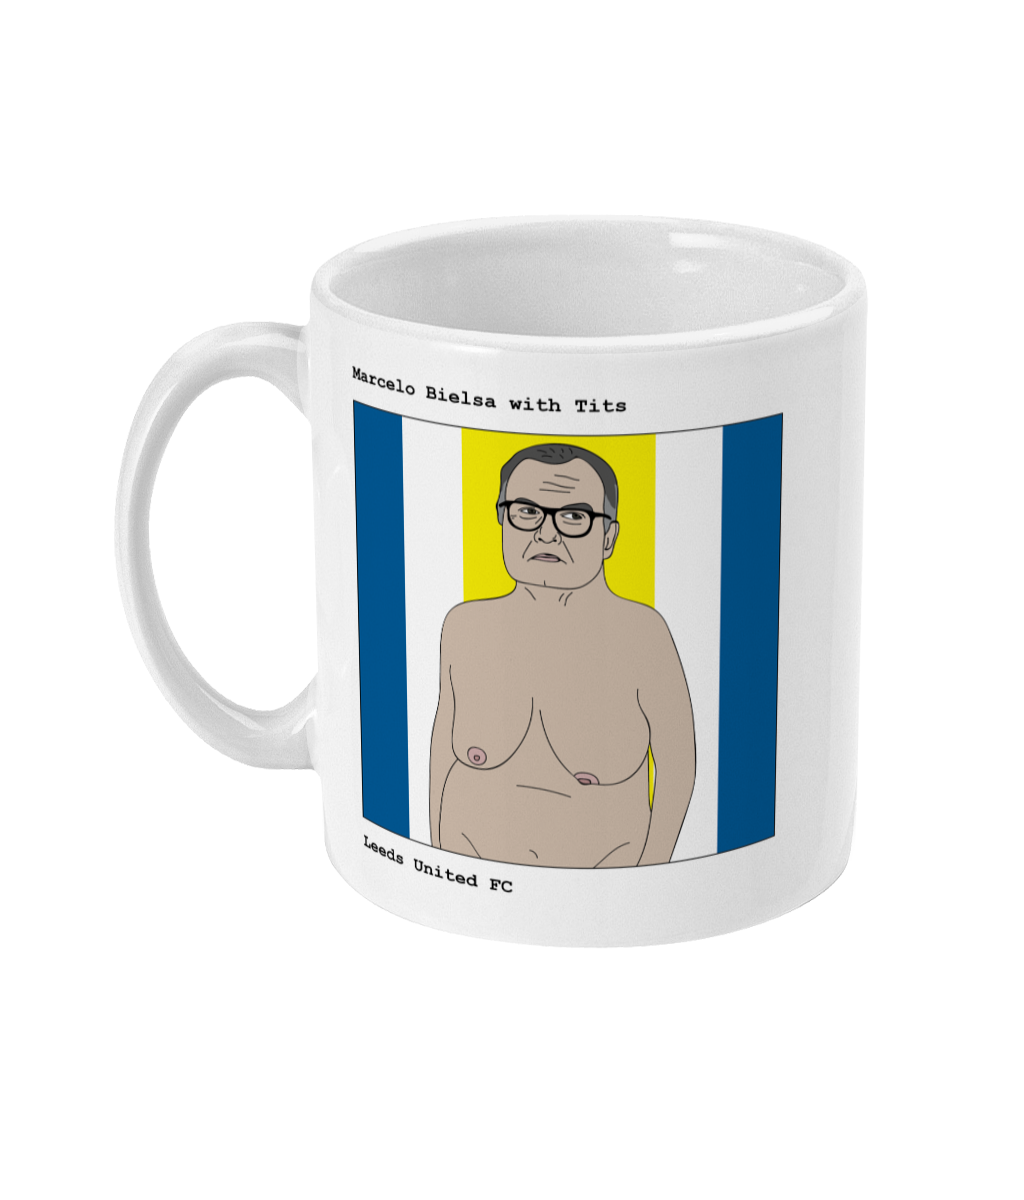 Marcelo Bielsa with Tits - Footballers with Tits